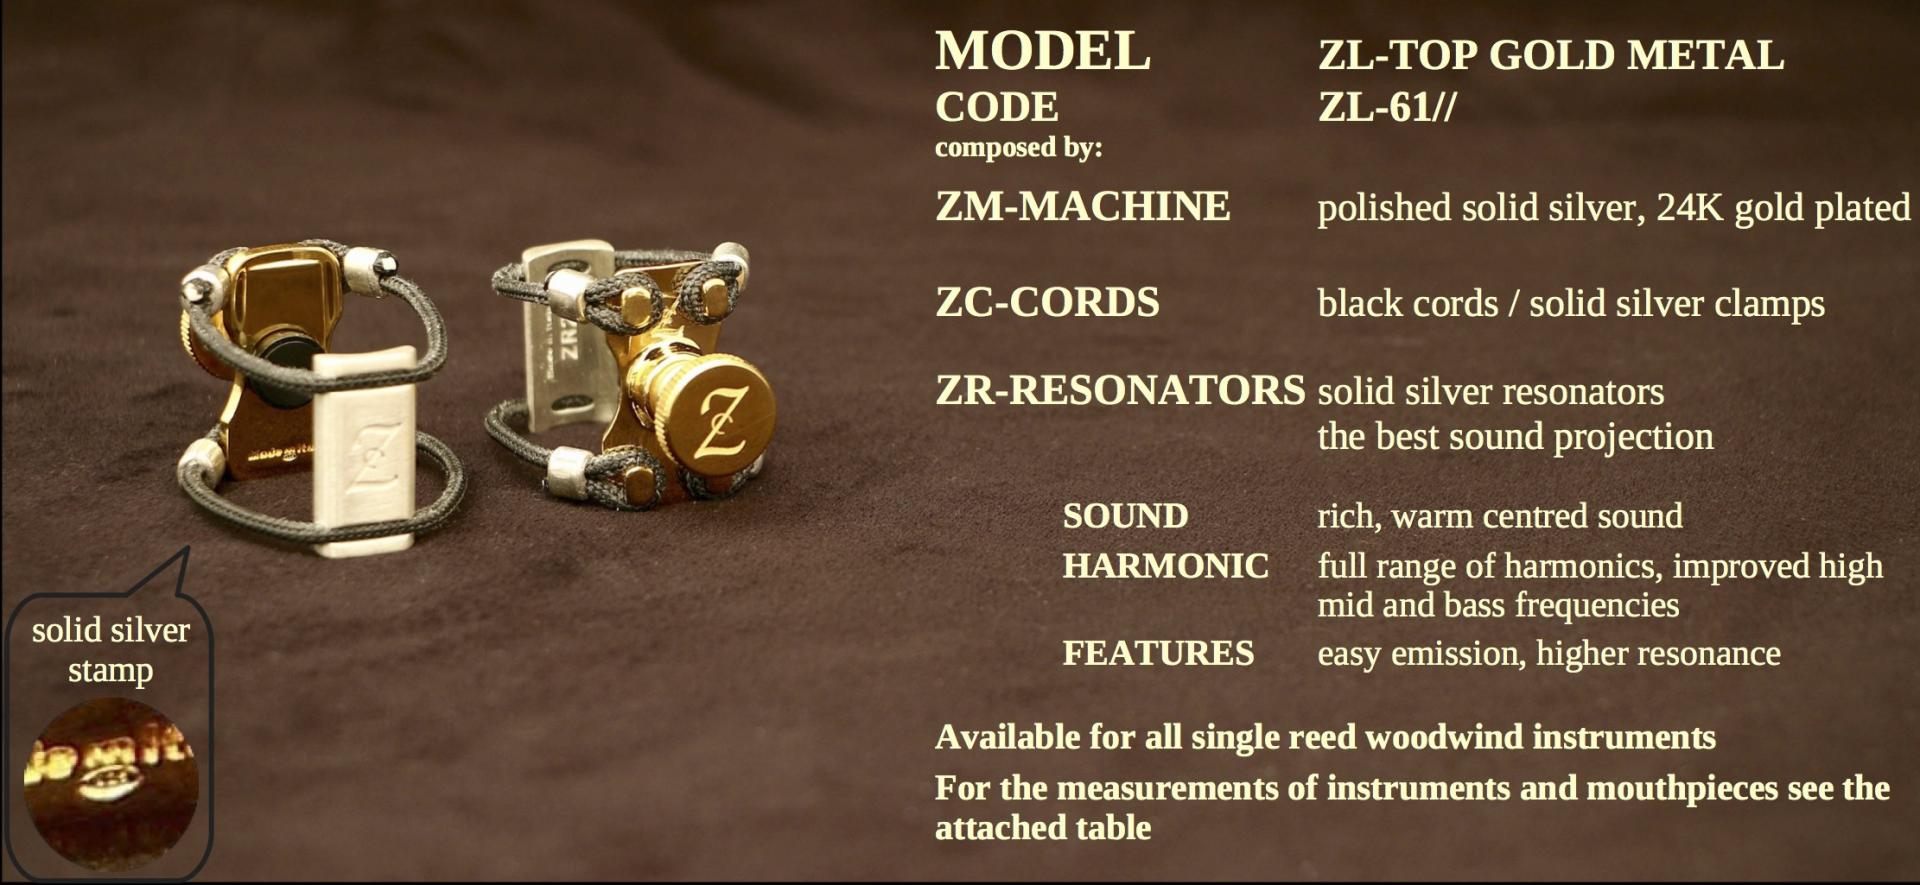 ZAC LIGATURE MODEL: ZL-TOP GOLD METAL